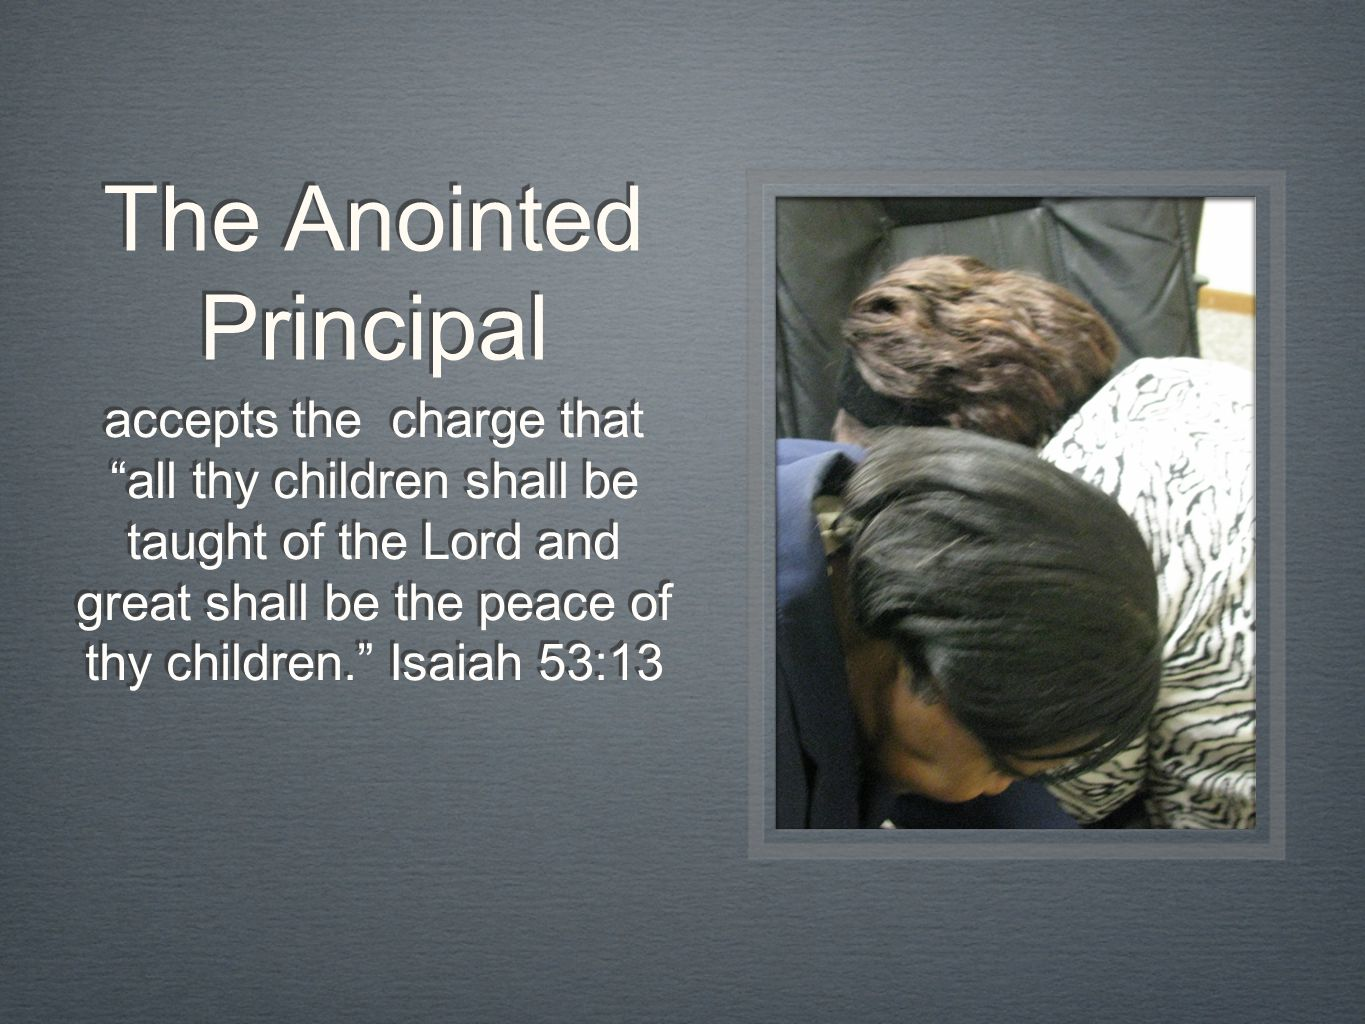 The Anointed Principal accepts the charge that all thy children shall be taught of the Lord and great shall be the peace of thy children. Isaiah 53:13